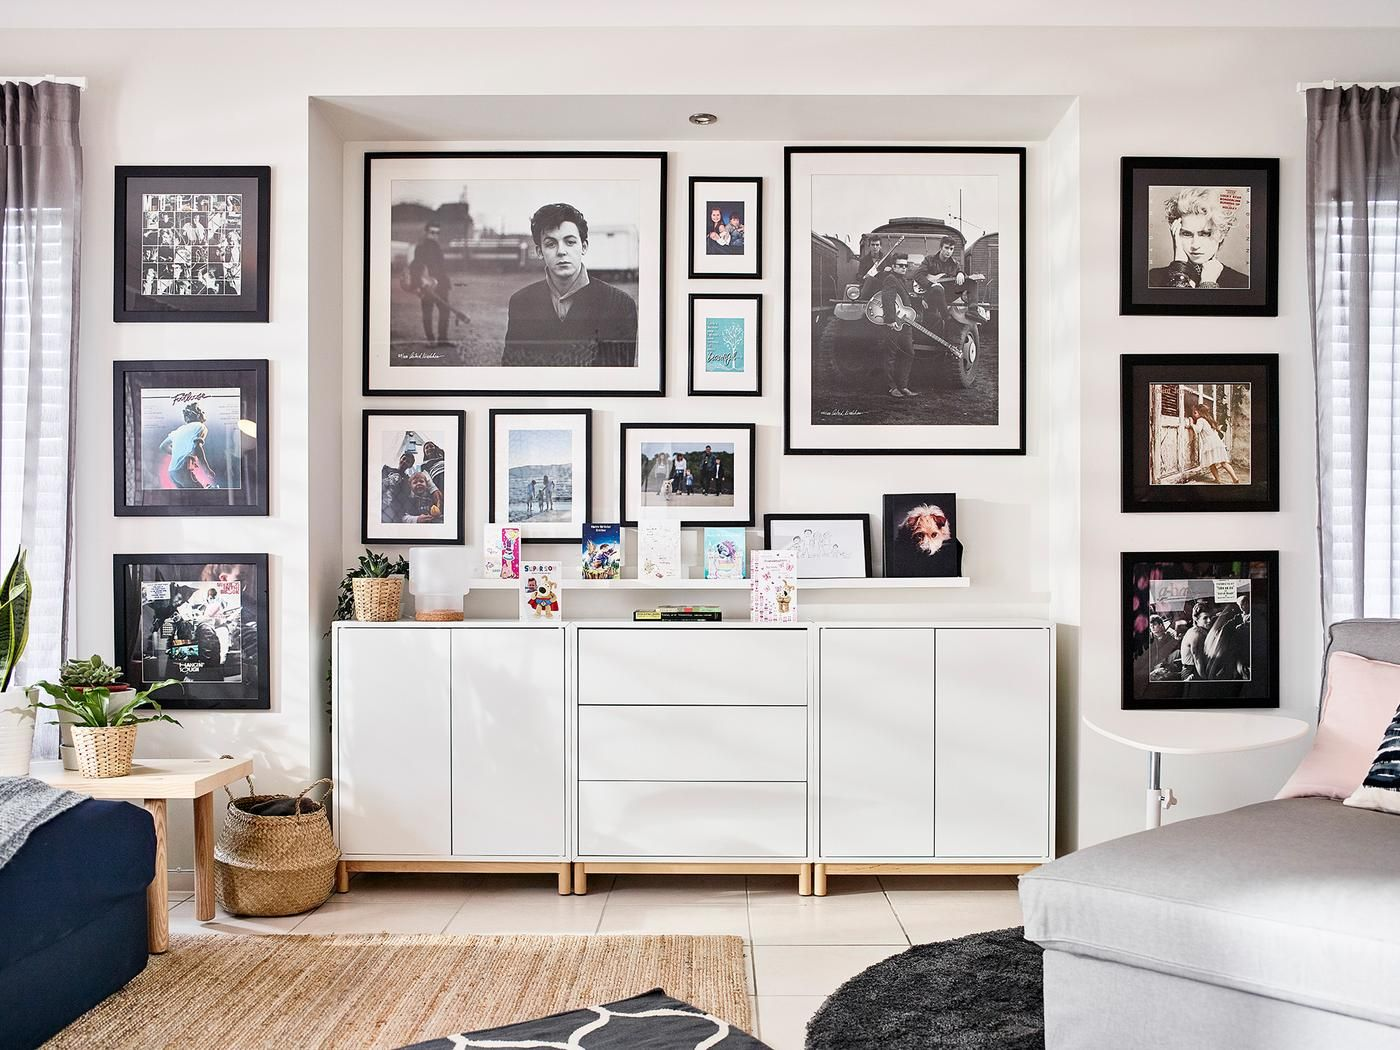 How To Design A Living Room Without A Tv Centre Stage Livingroom Layout Living Room Bedroom Combination Living Room Without Tv